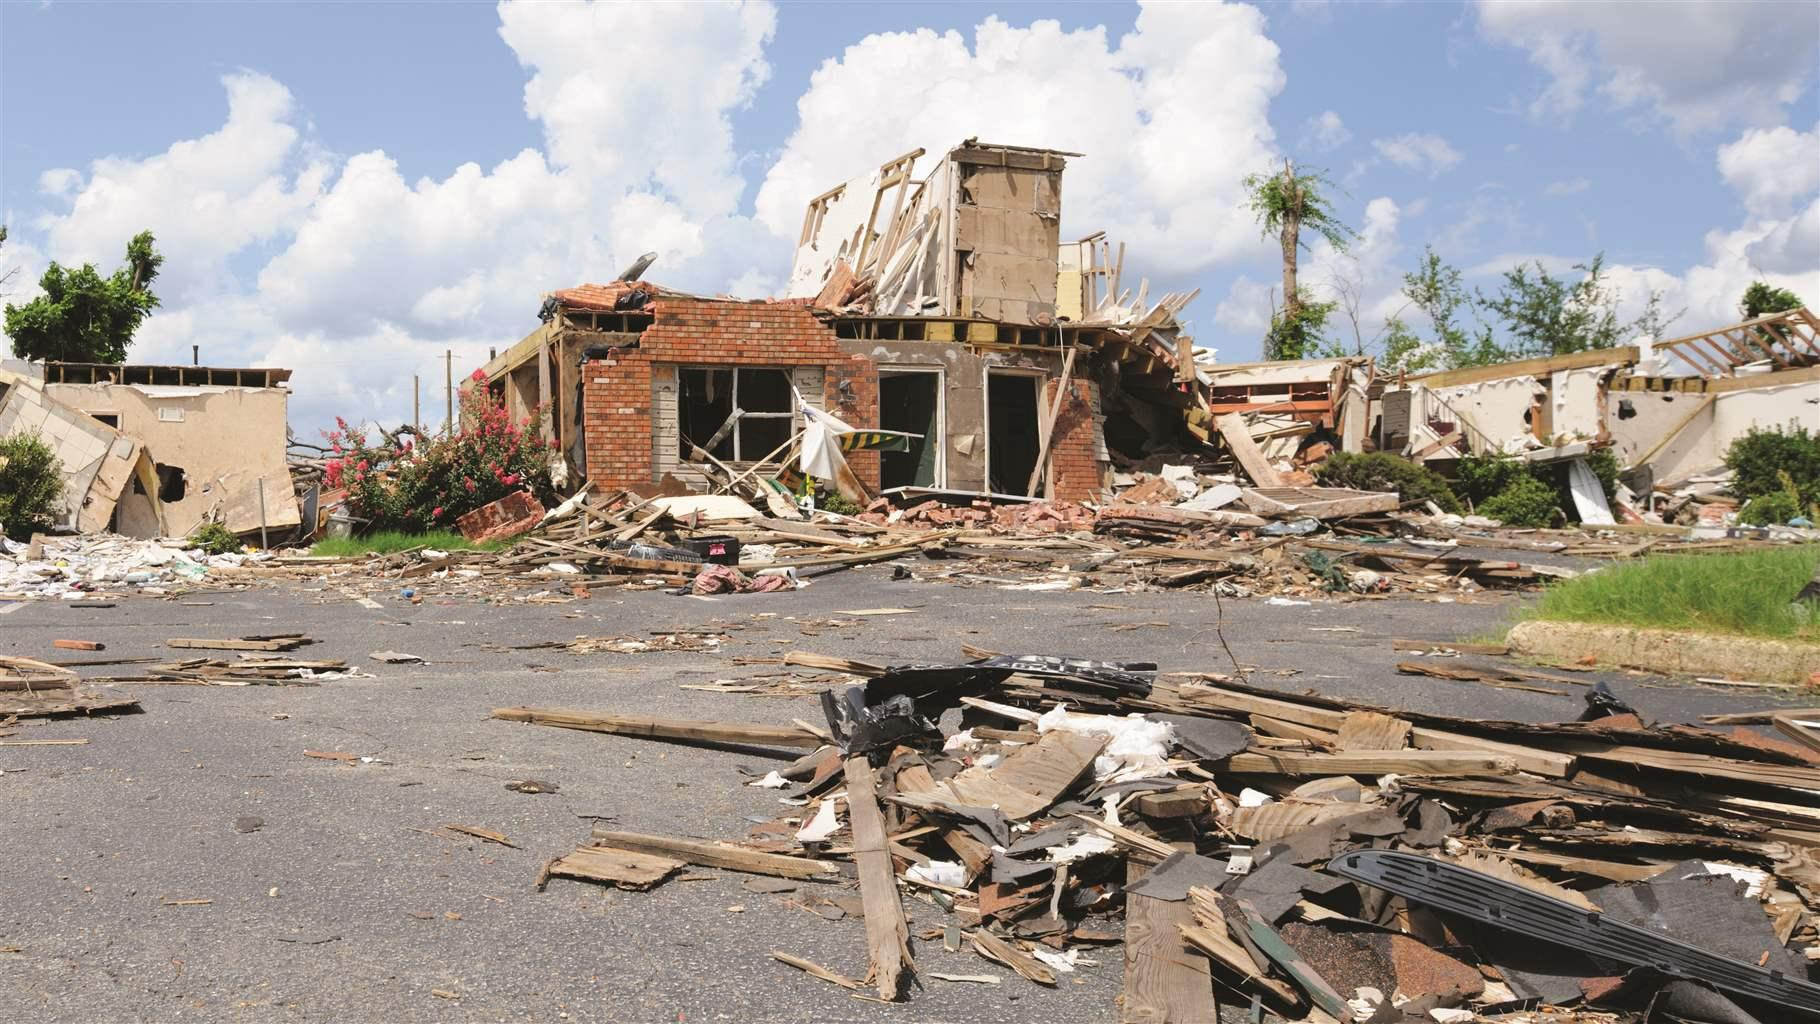 Building damage from tornado